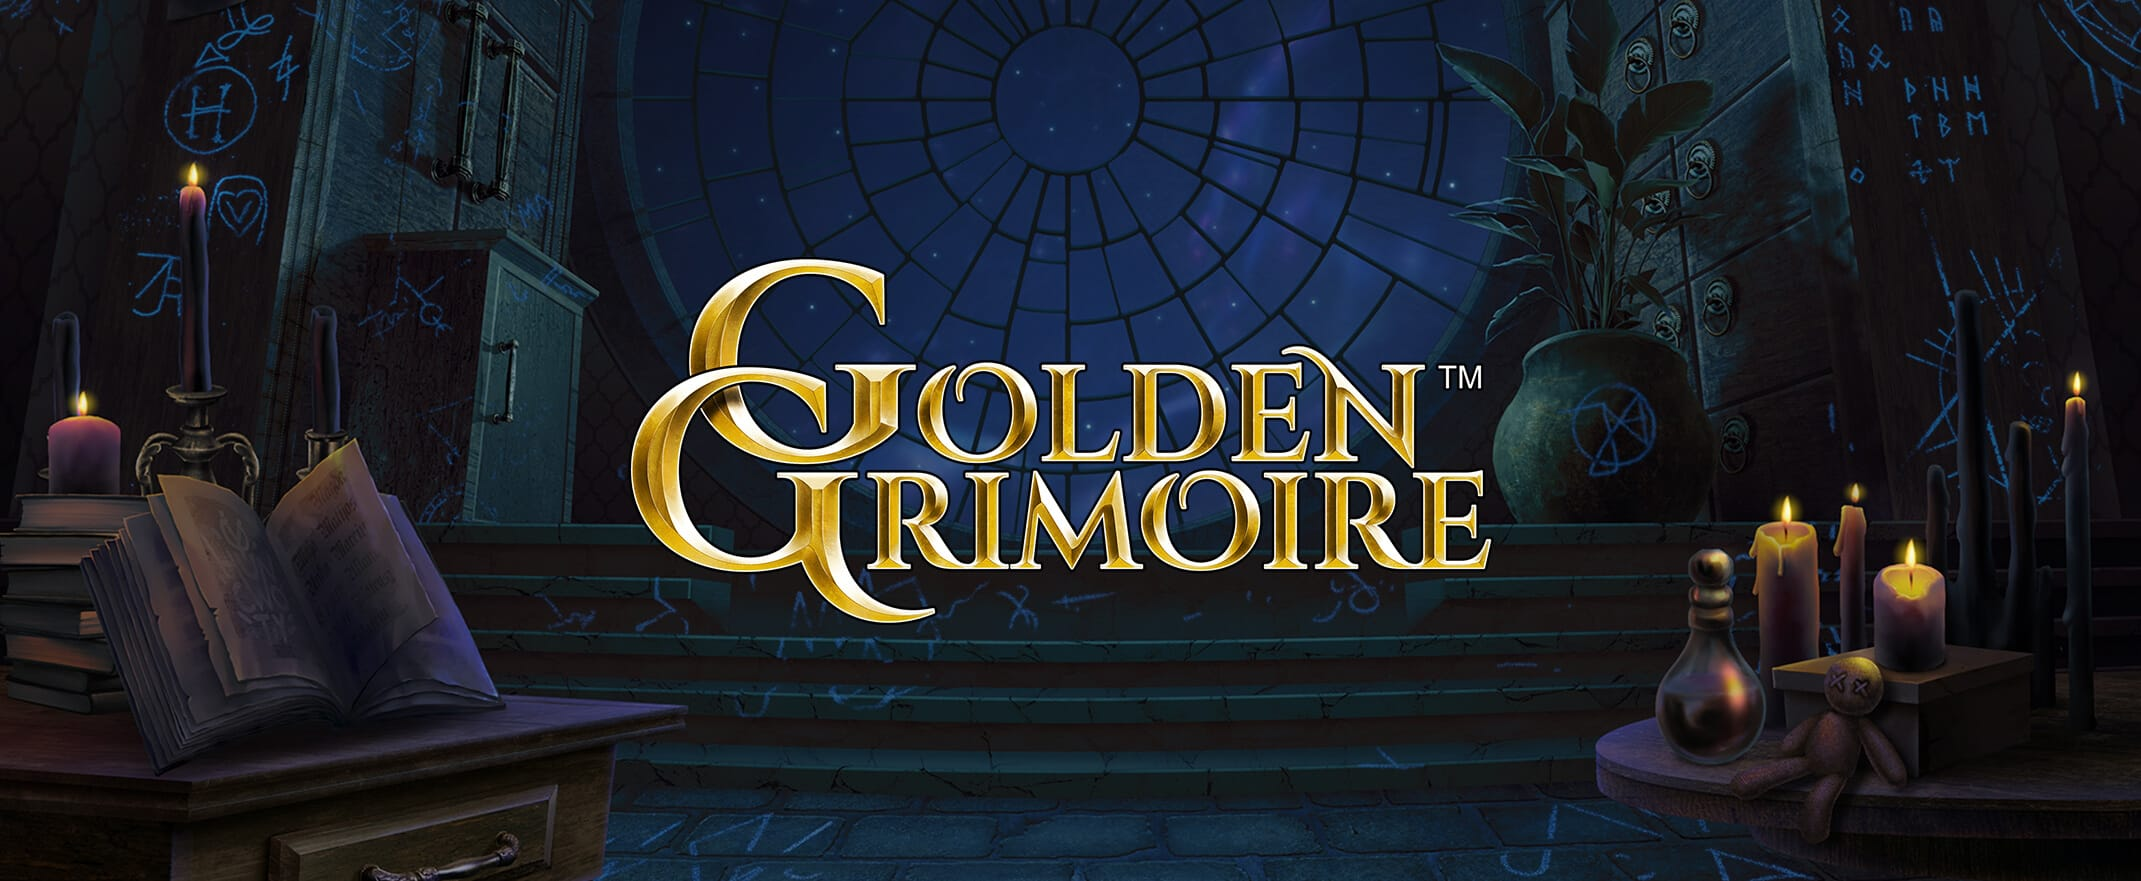 Golden Grimoire Slot Game by NetEnt